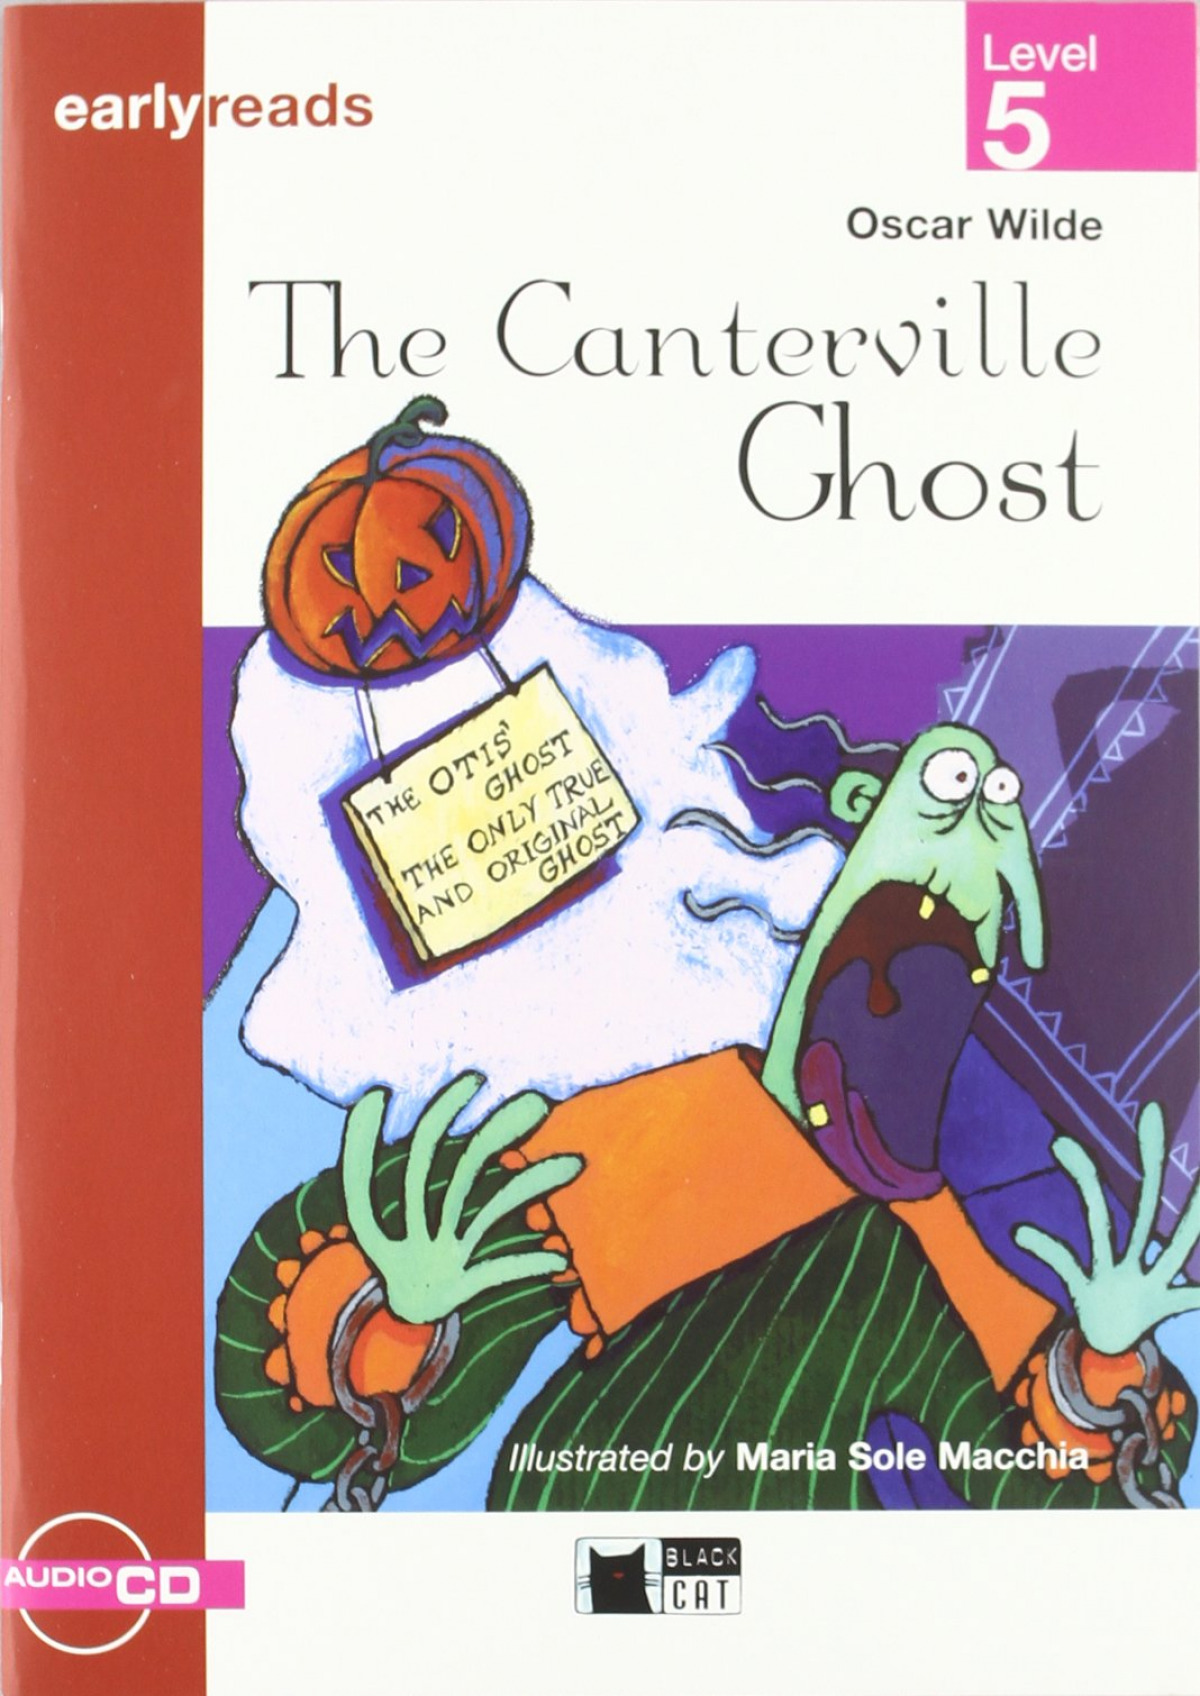 The Canterville Ghost+cd (earlyreads) - Cideb Editrice S.R.L.